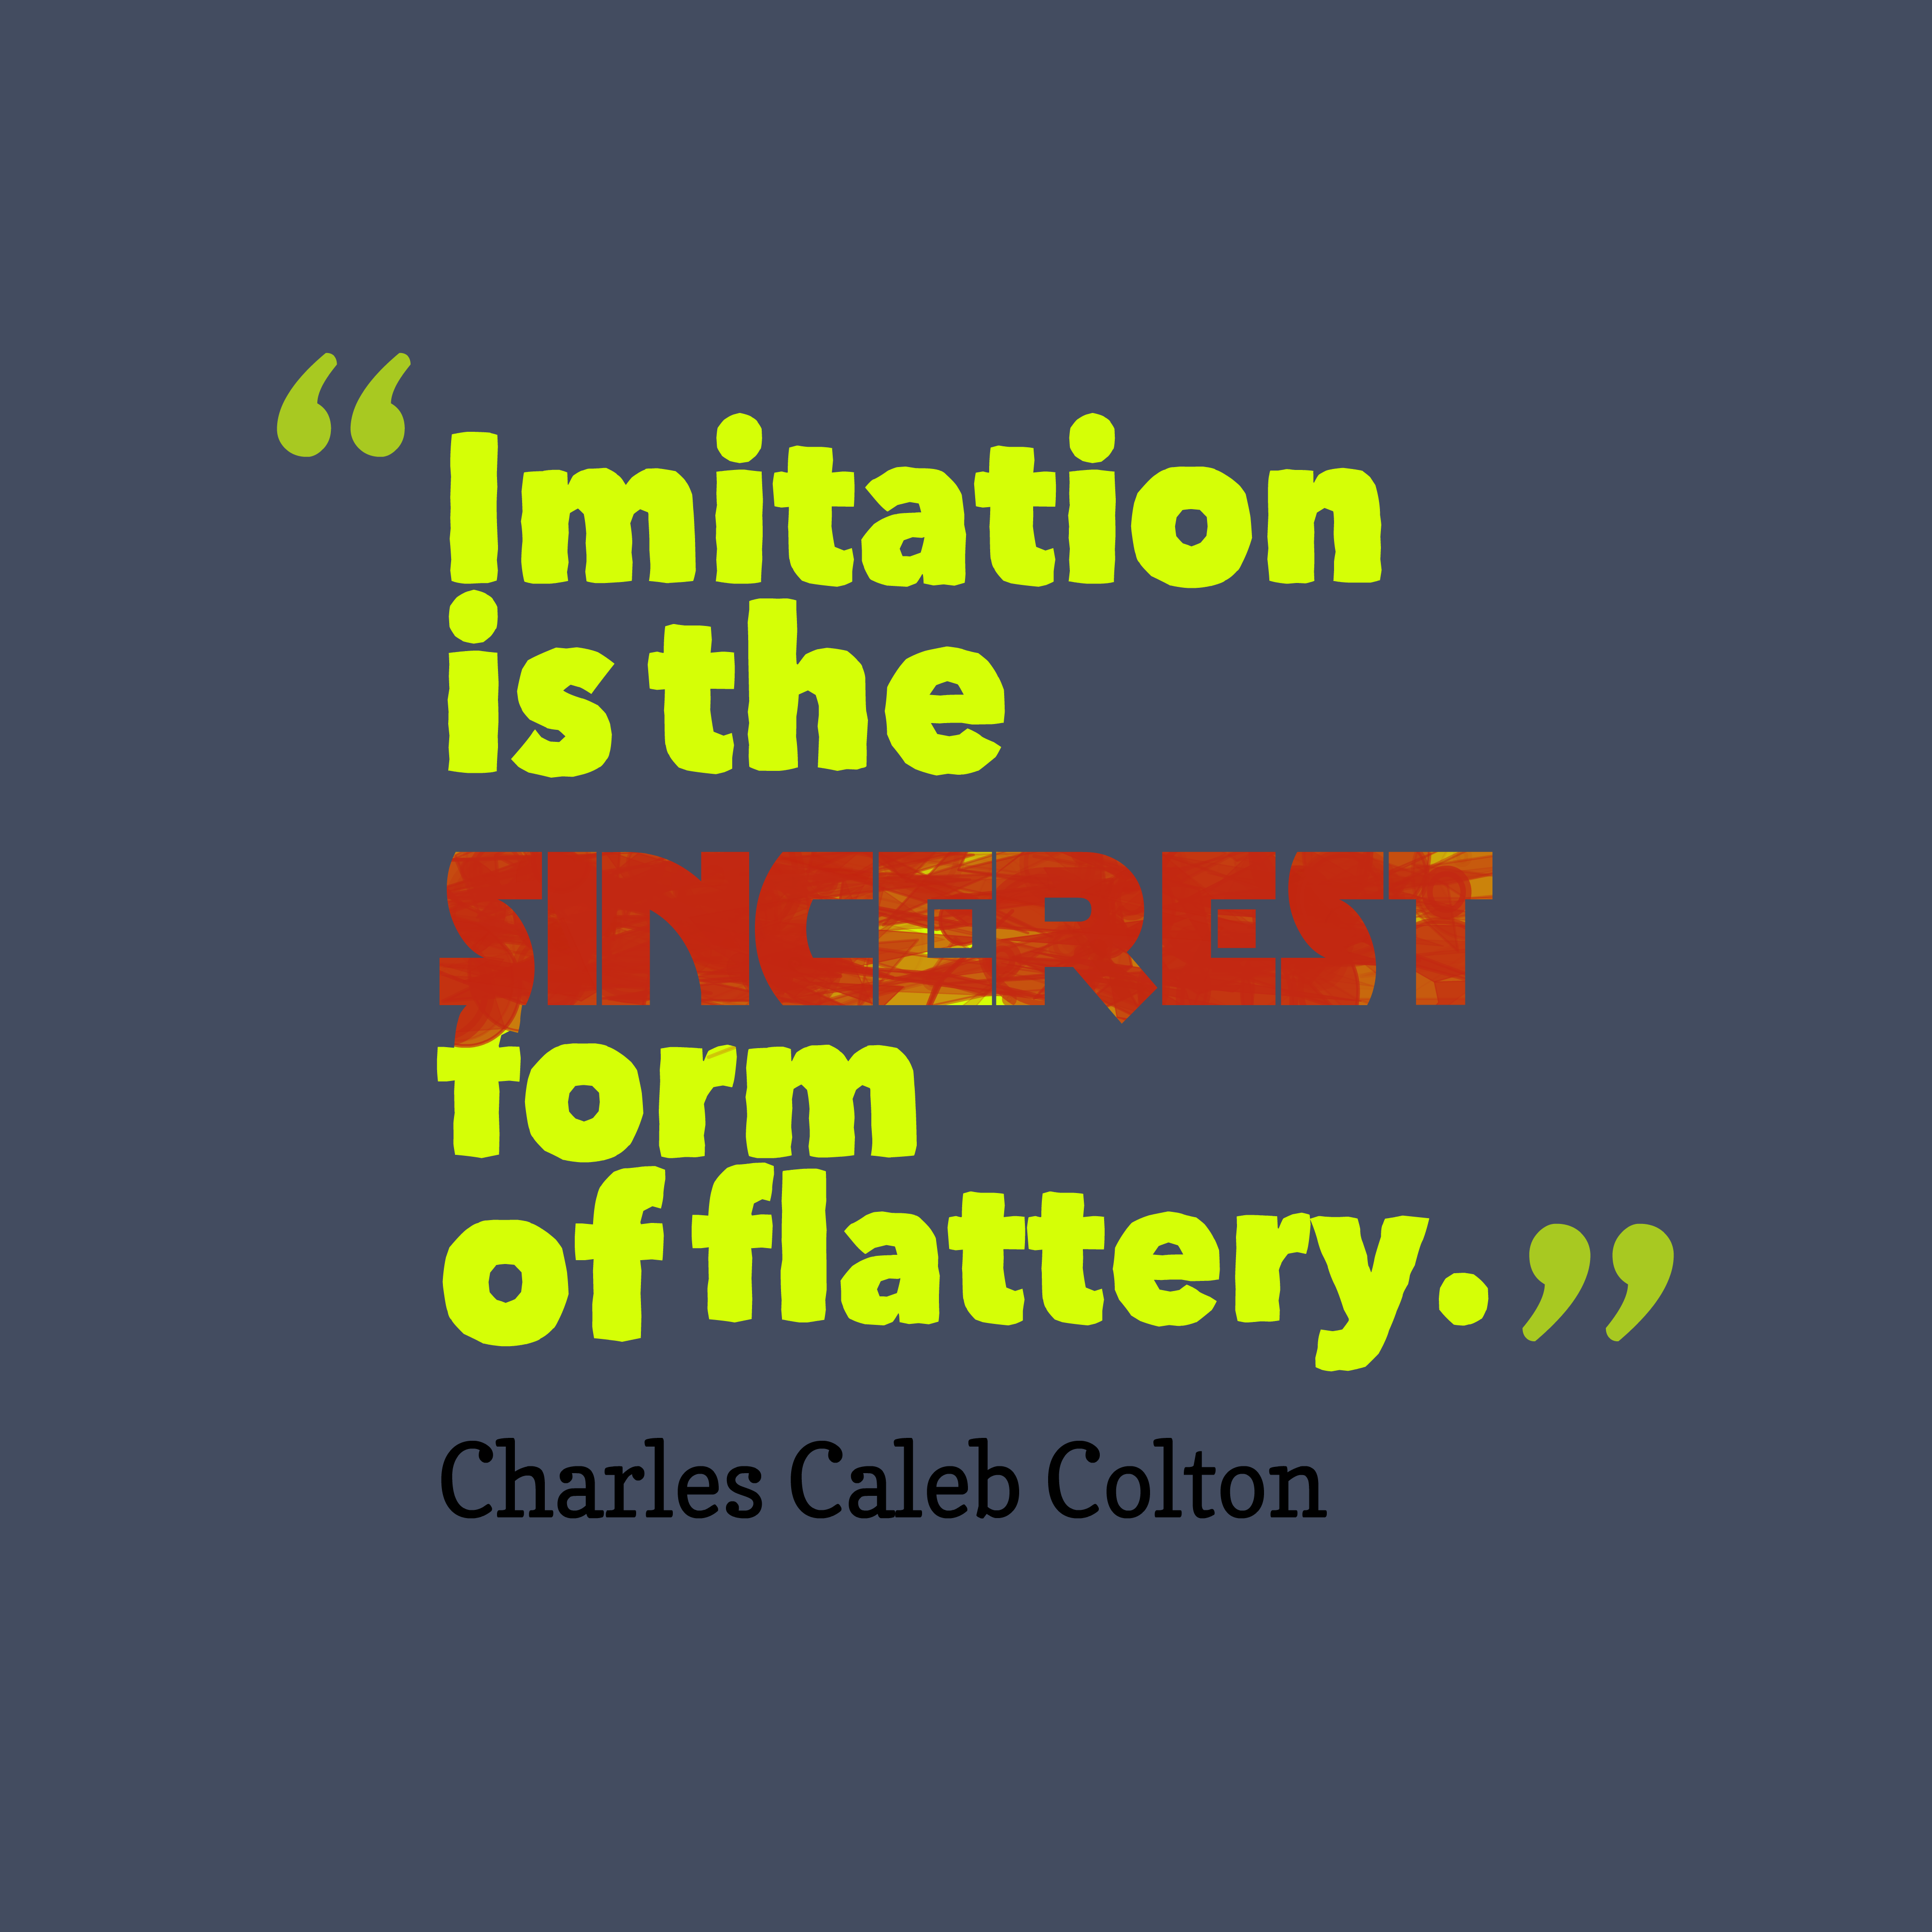 Get high resolution using text from Charles Caleb Colton ...